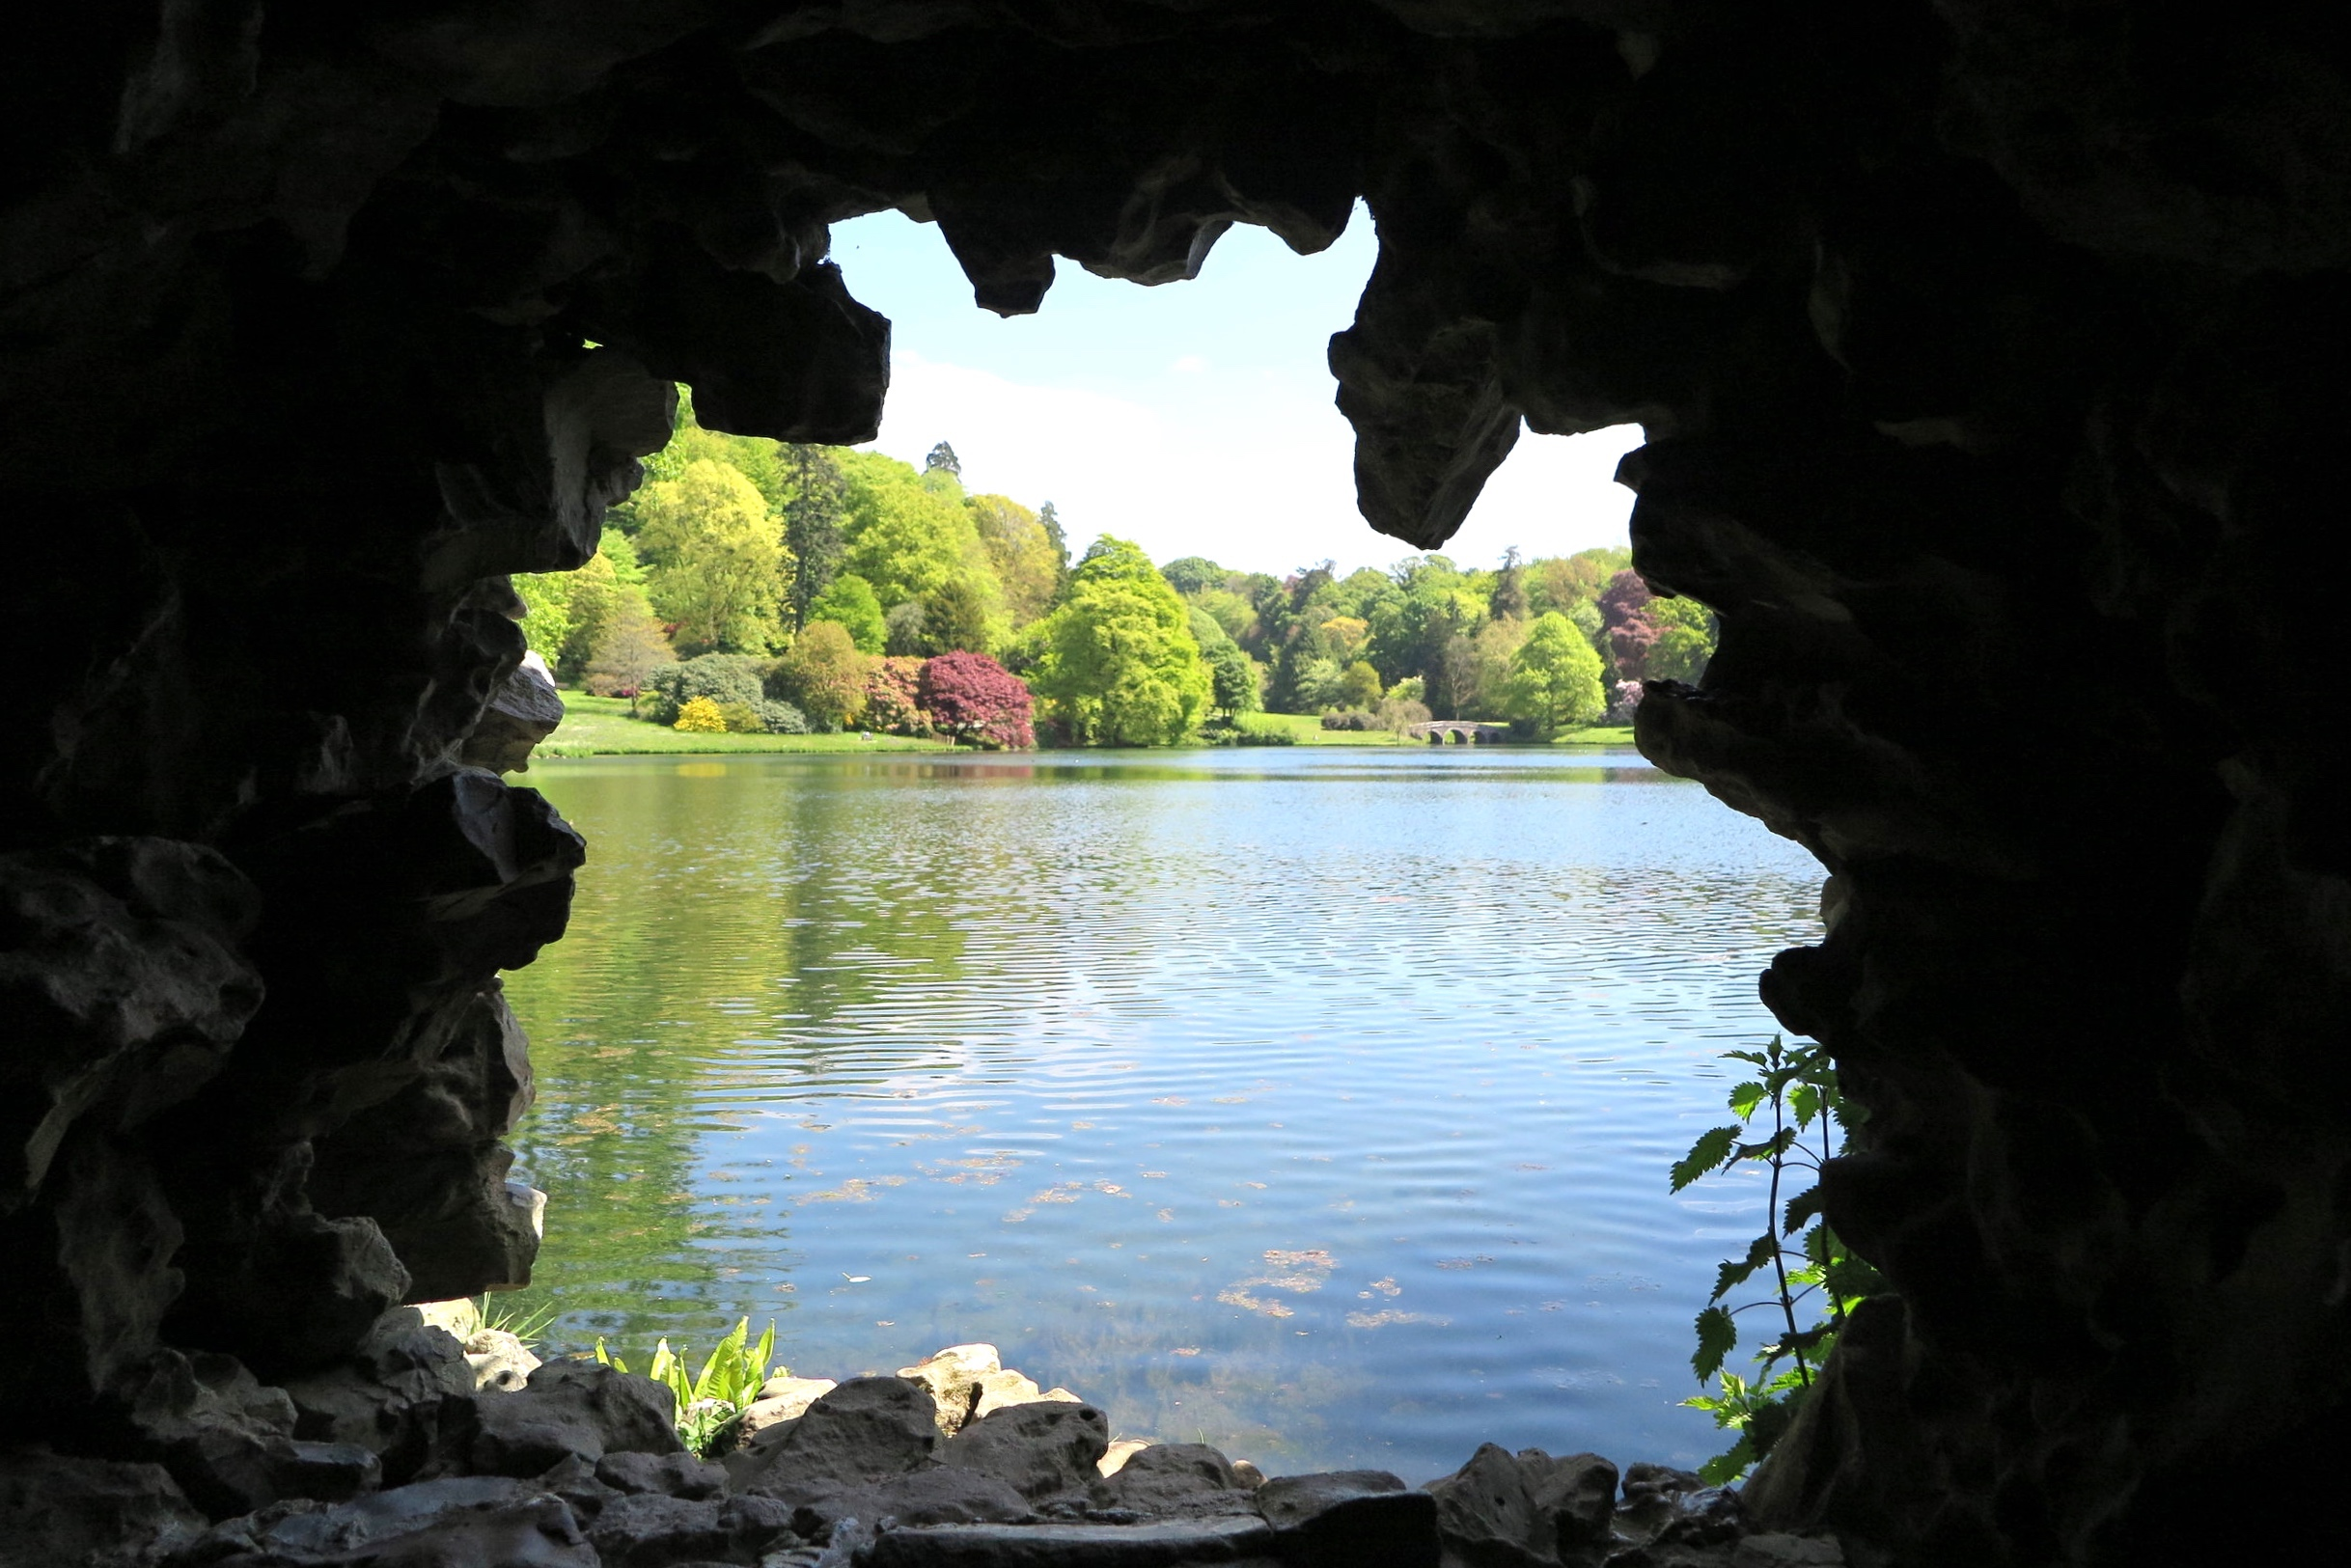 The view  of the lake from the grotto